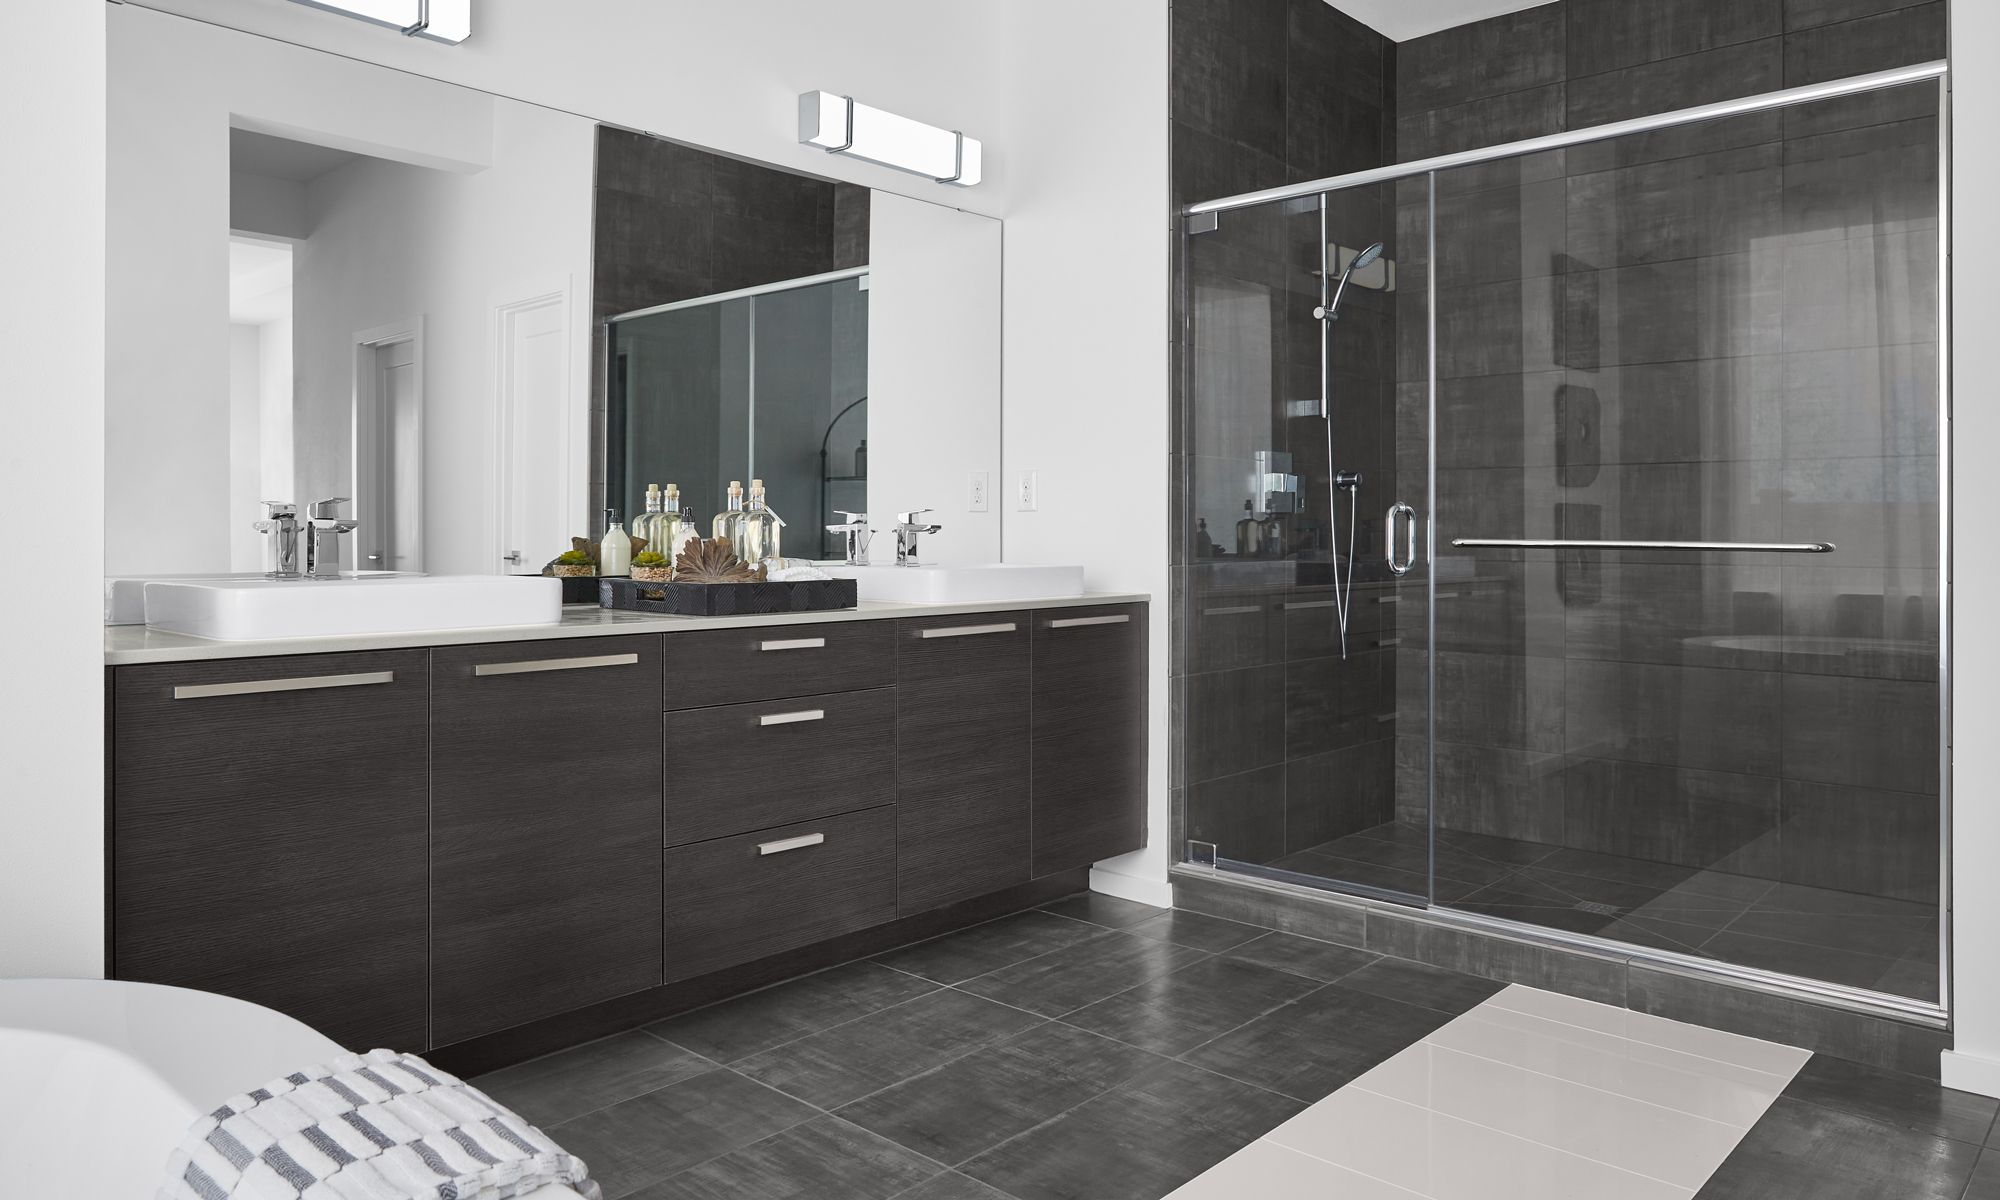 Bathroom featured in the Kingston V2 By MainVue Homes in Bremerton, WA